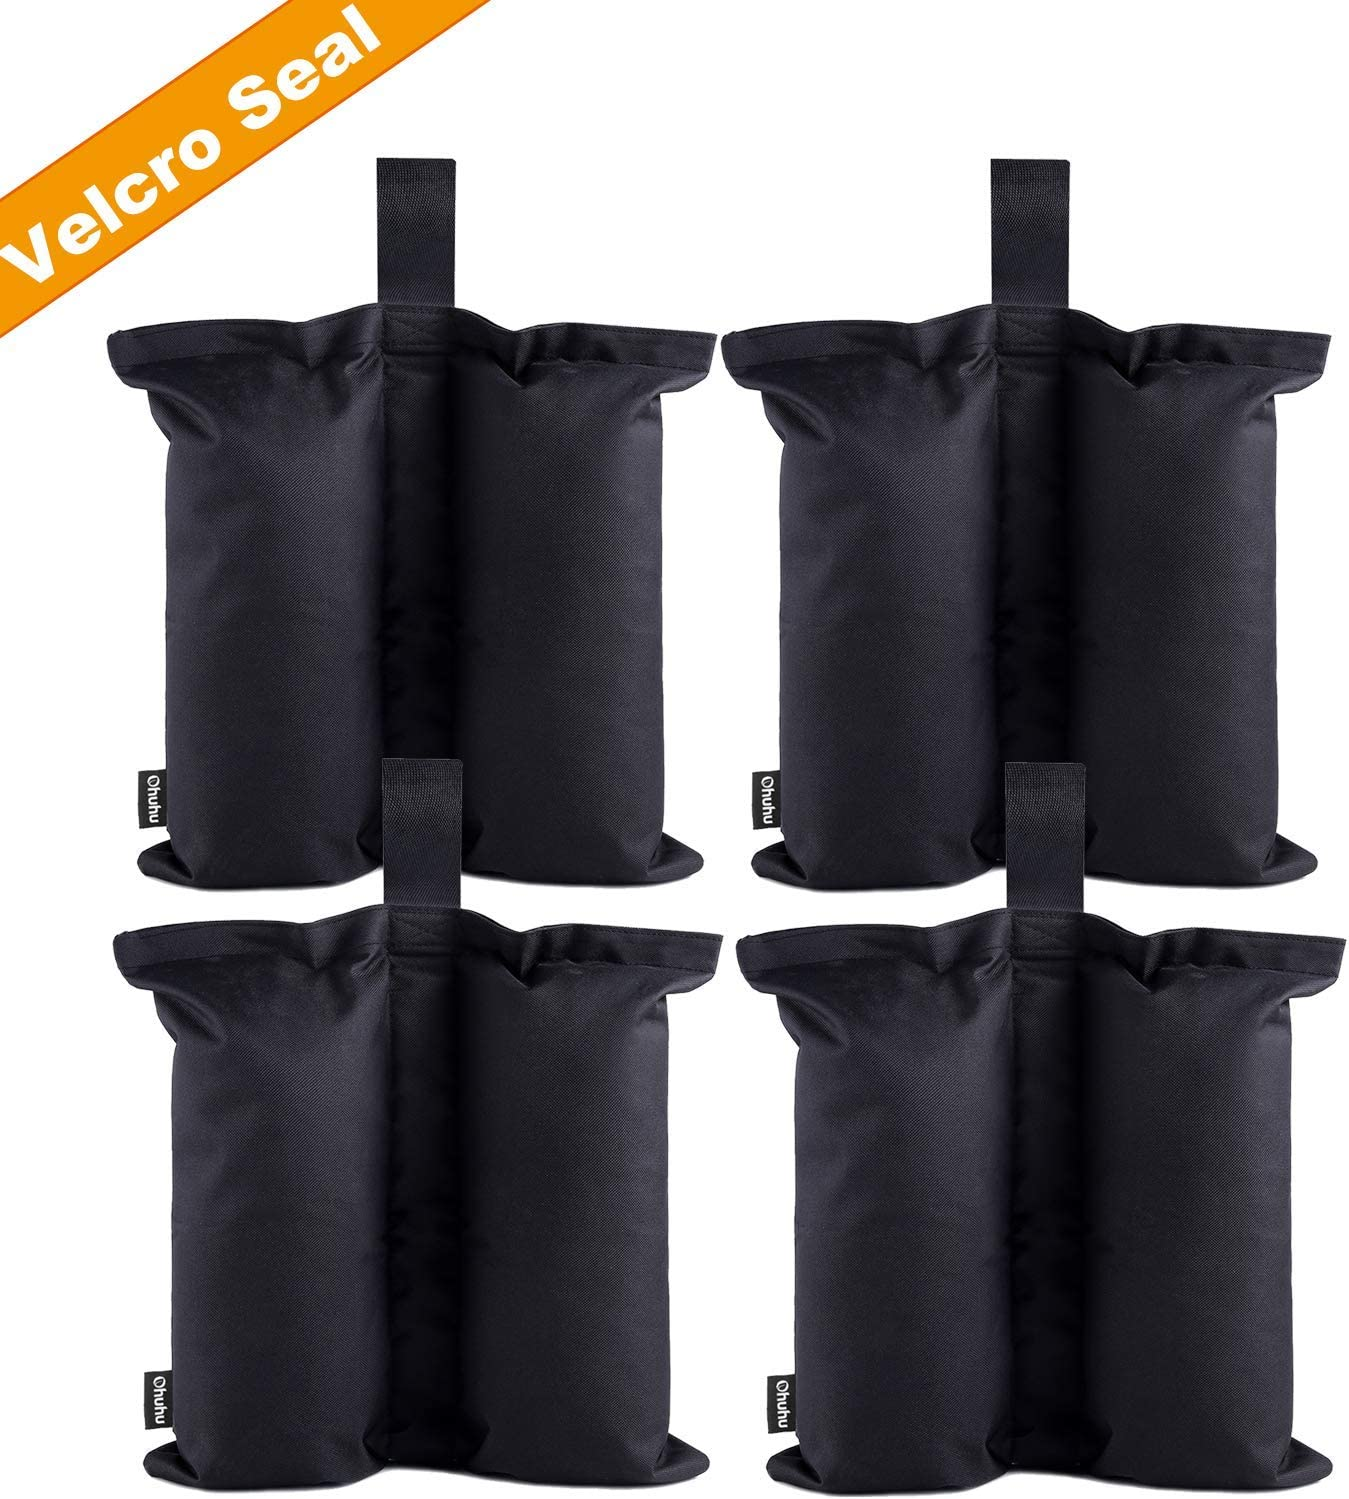 Ohuhu Canopy Weight Bags for Canopy Tent, Up to 115 LBS Capacity Sand Bags Leg Weights for Pop Up Instant Outdoor Sun Shelter Canopy Legs, 4-Pack (Bags Only, Sand Not Included) 71pY7aUJbZL